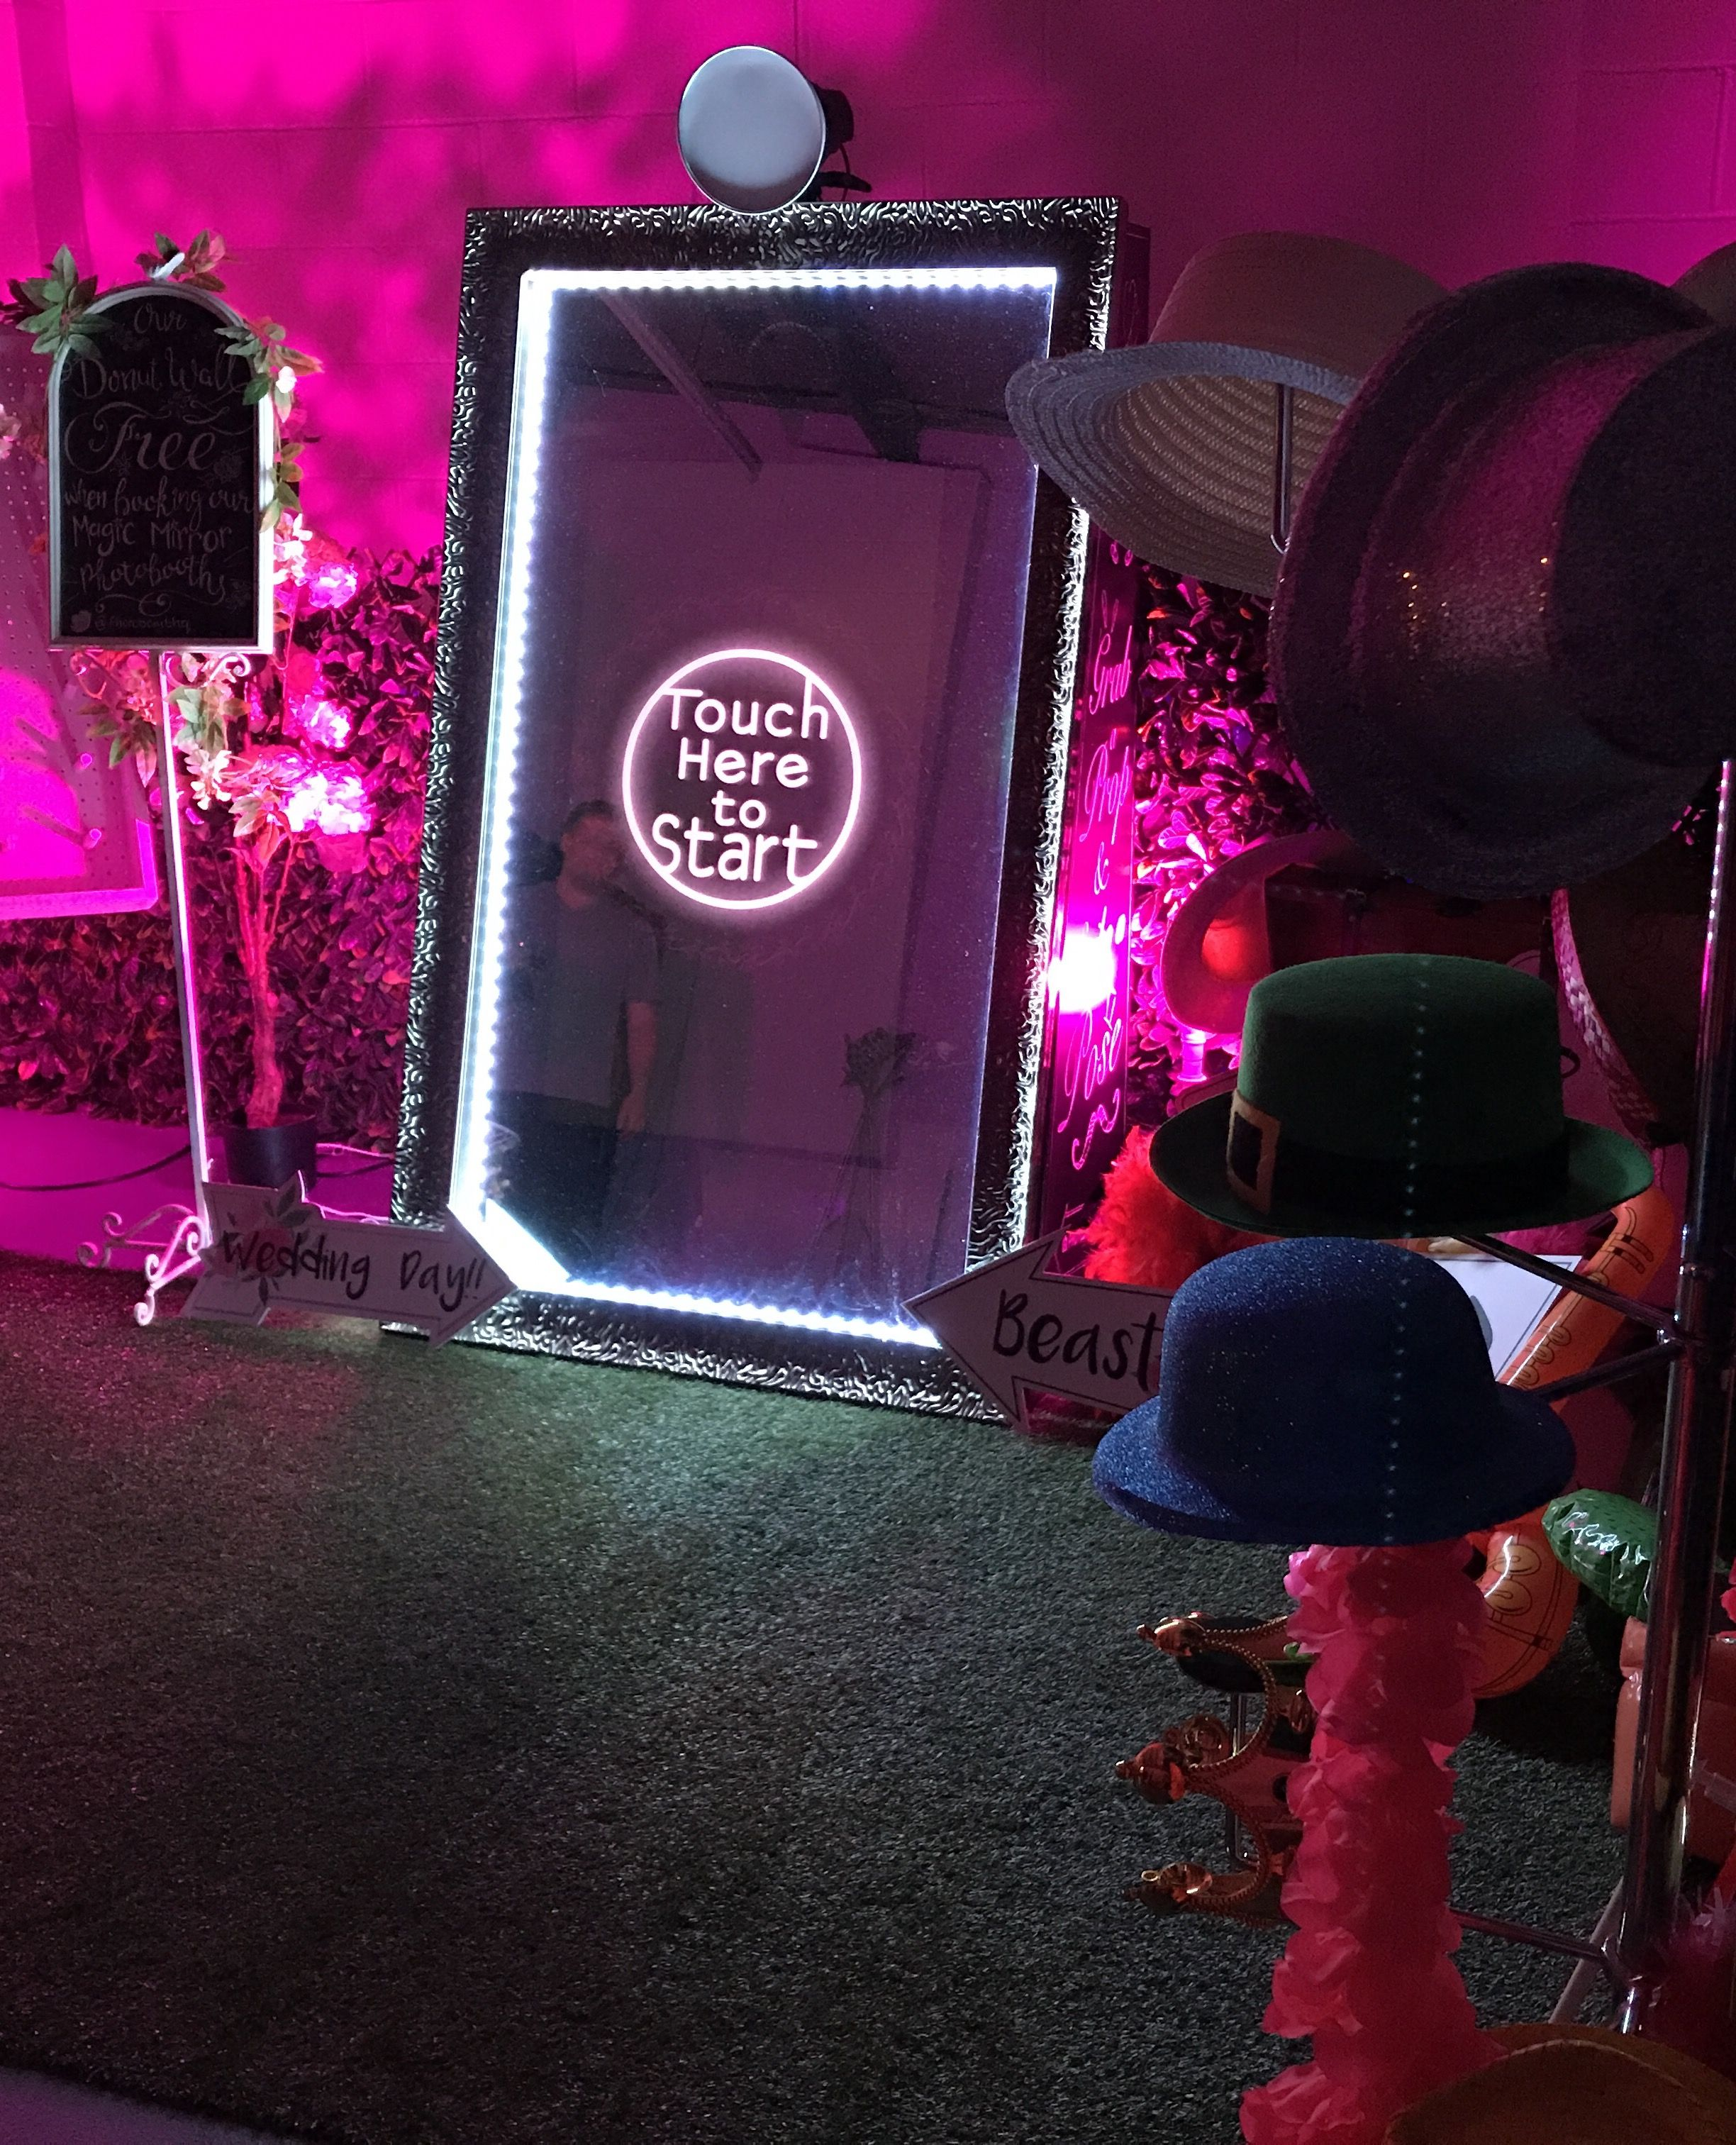 Hire our exciting and interactive magic mirror! So much fun and we bring all the props for you! Find us on Facebook @photobombhq #magicmirror #photobooth #personilsed #weddings #parties #entertainment #funevents